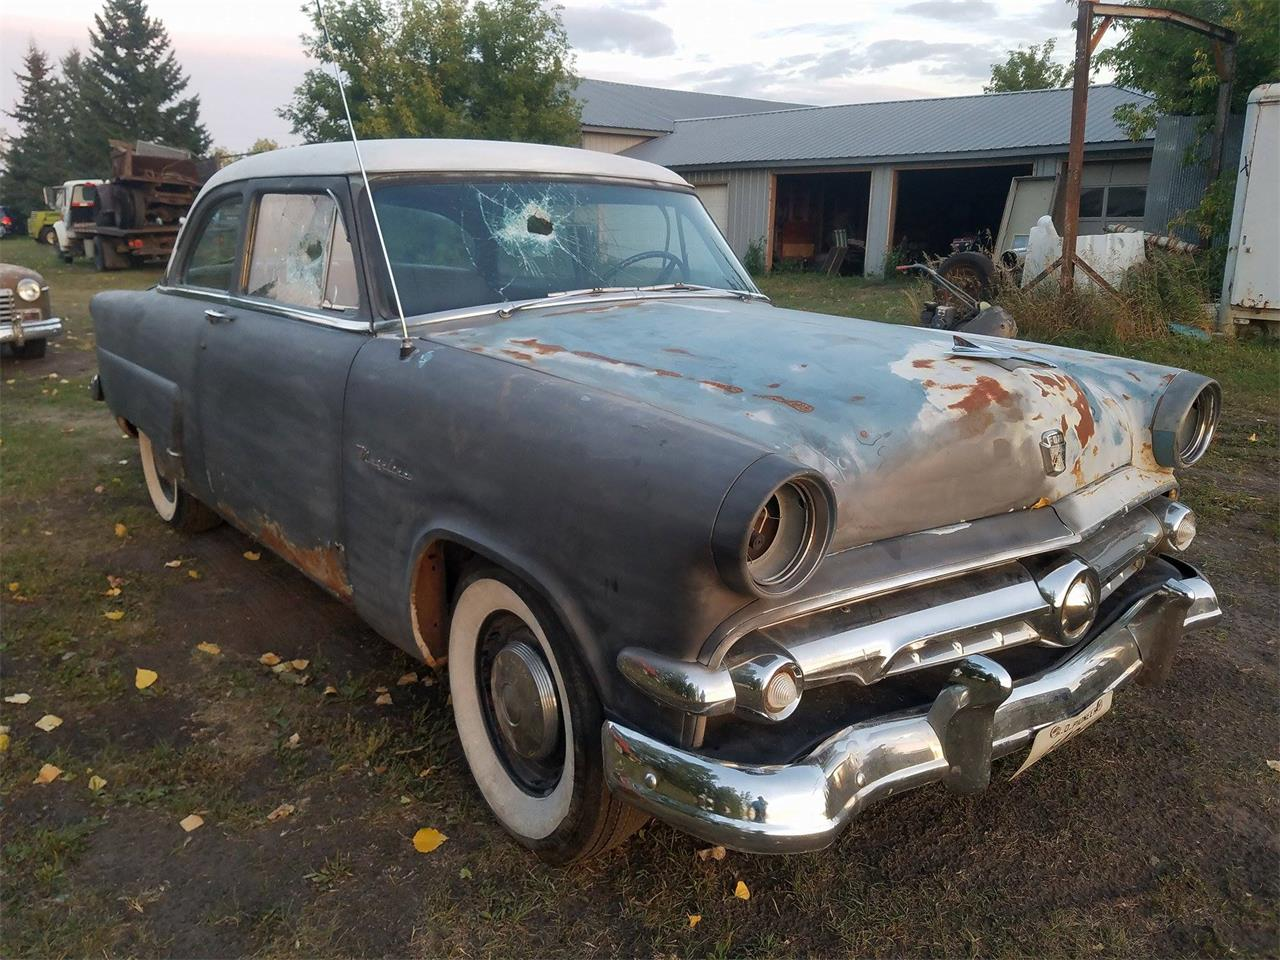 Large Picture of 1954 Ford Mainline located in Crookston Minnesota - $3,000.00 Offered by Backyard Classics - LVII